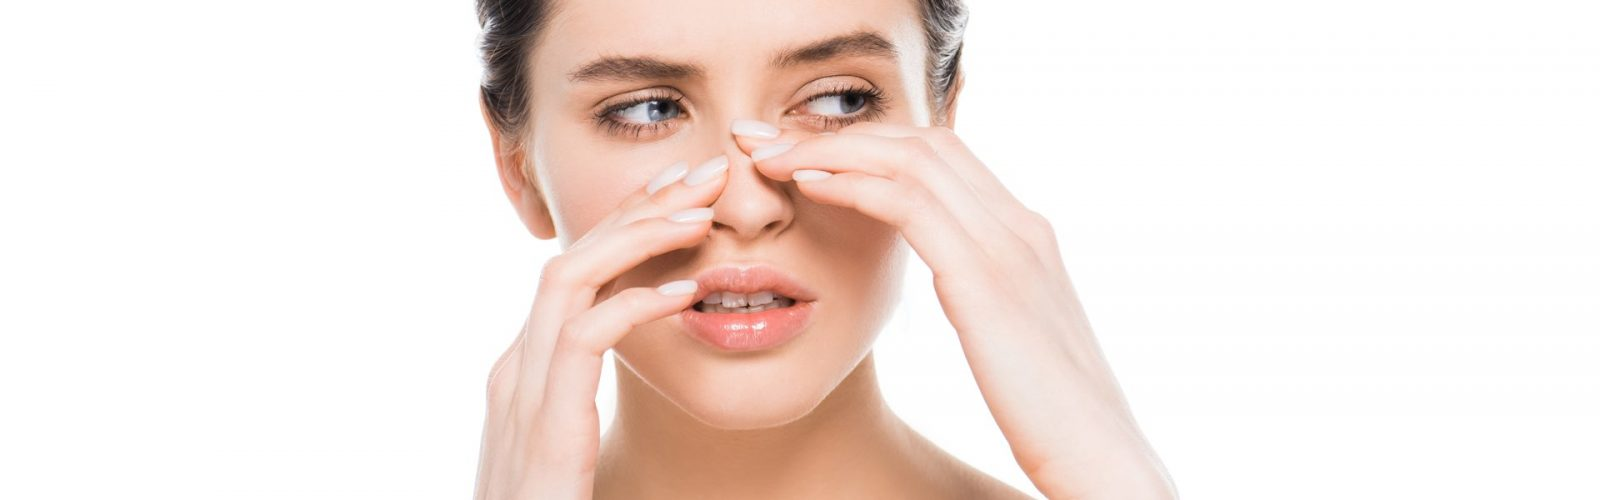 medassist-how-long-is-recovery-after-from-rhinoplasty